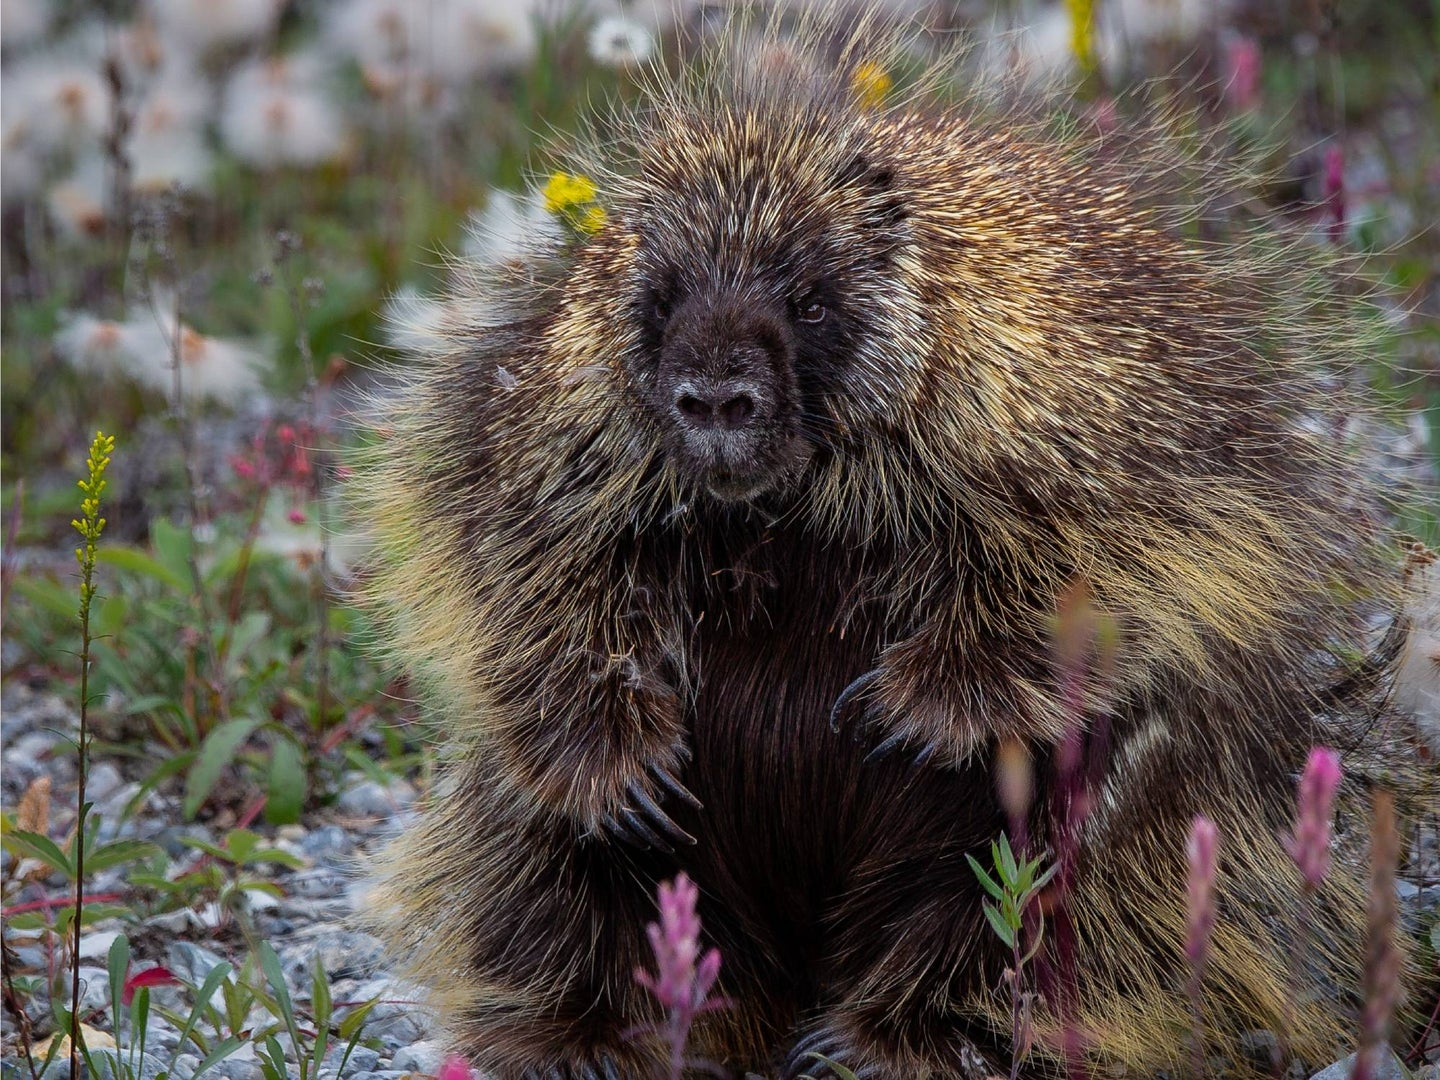 North american porcupine sitting on the ground among wild flower